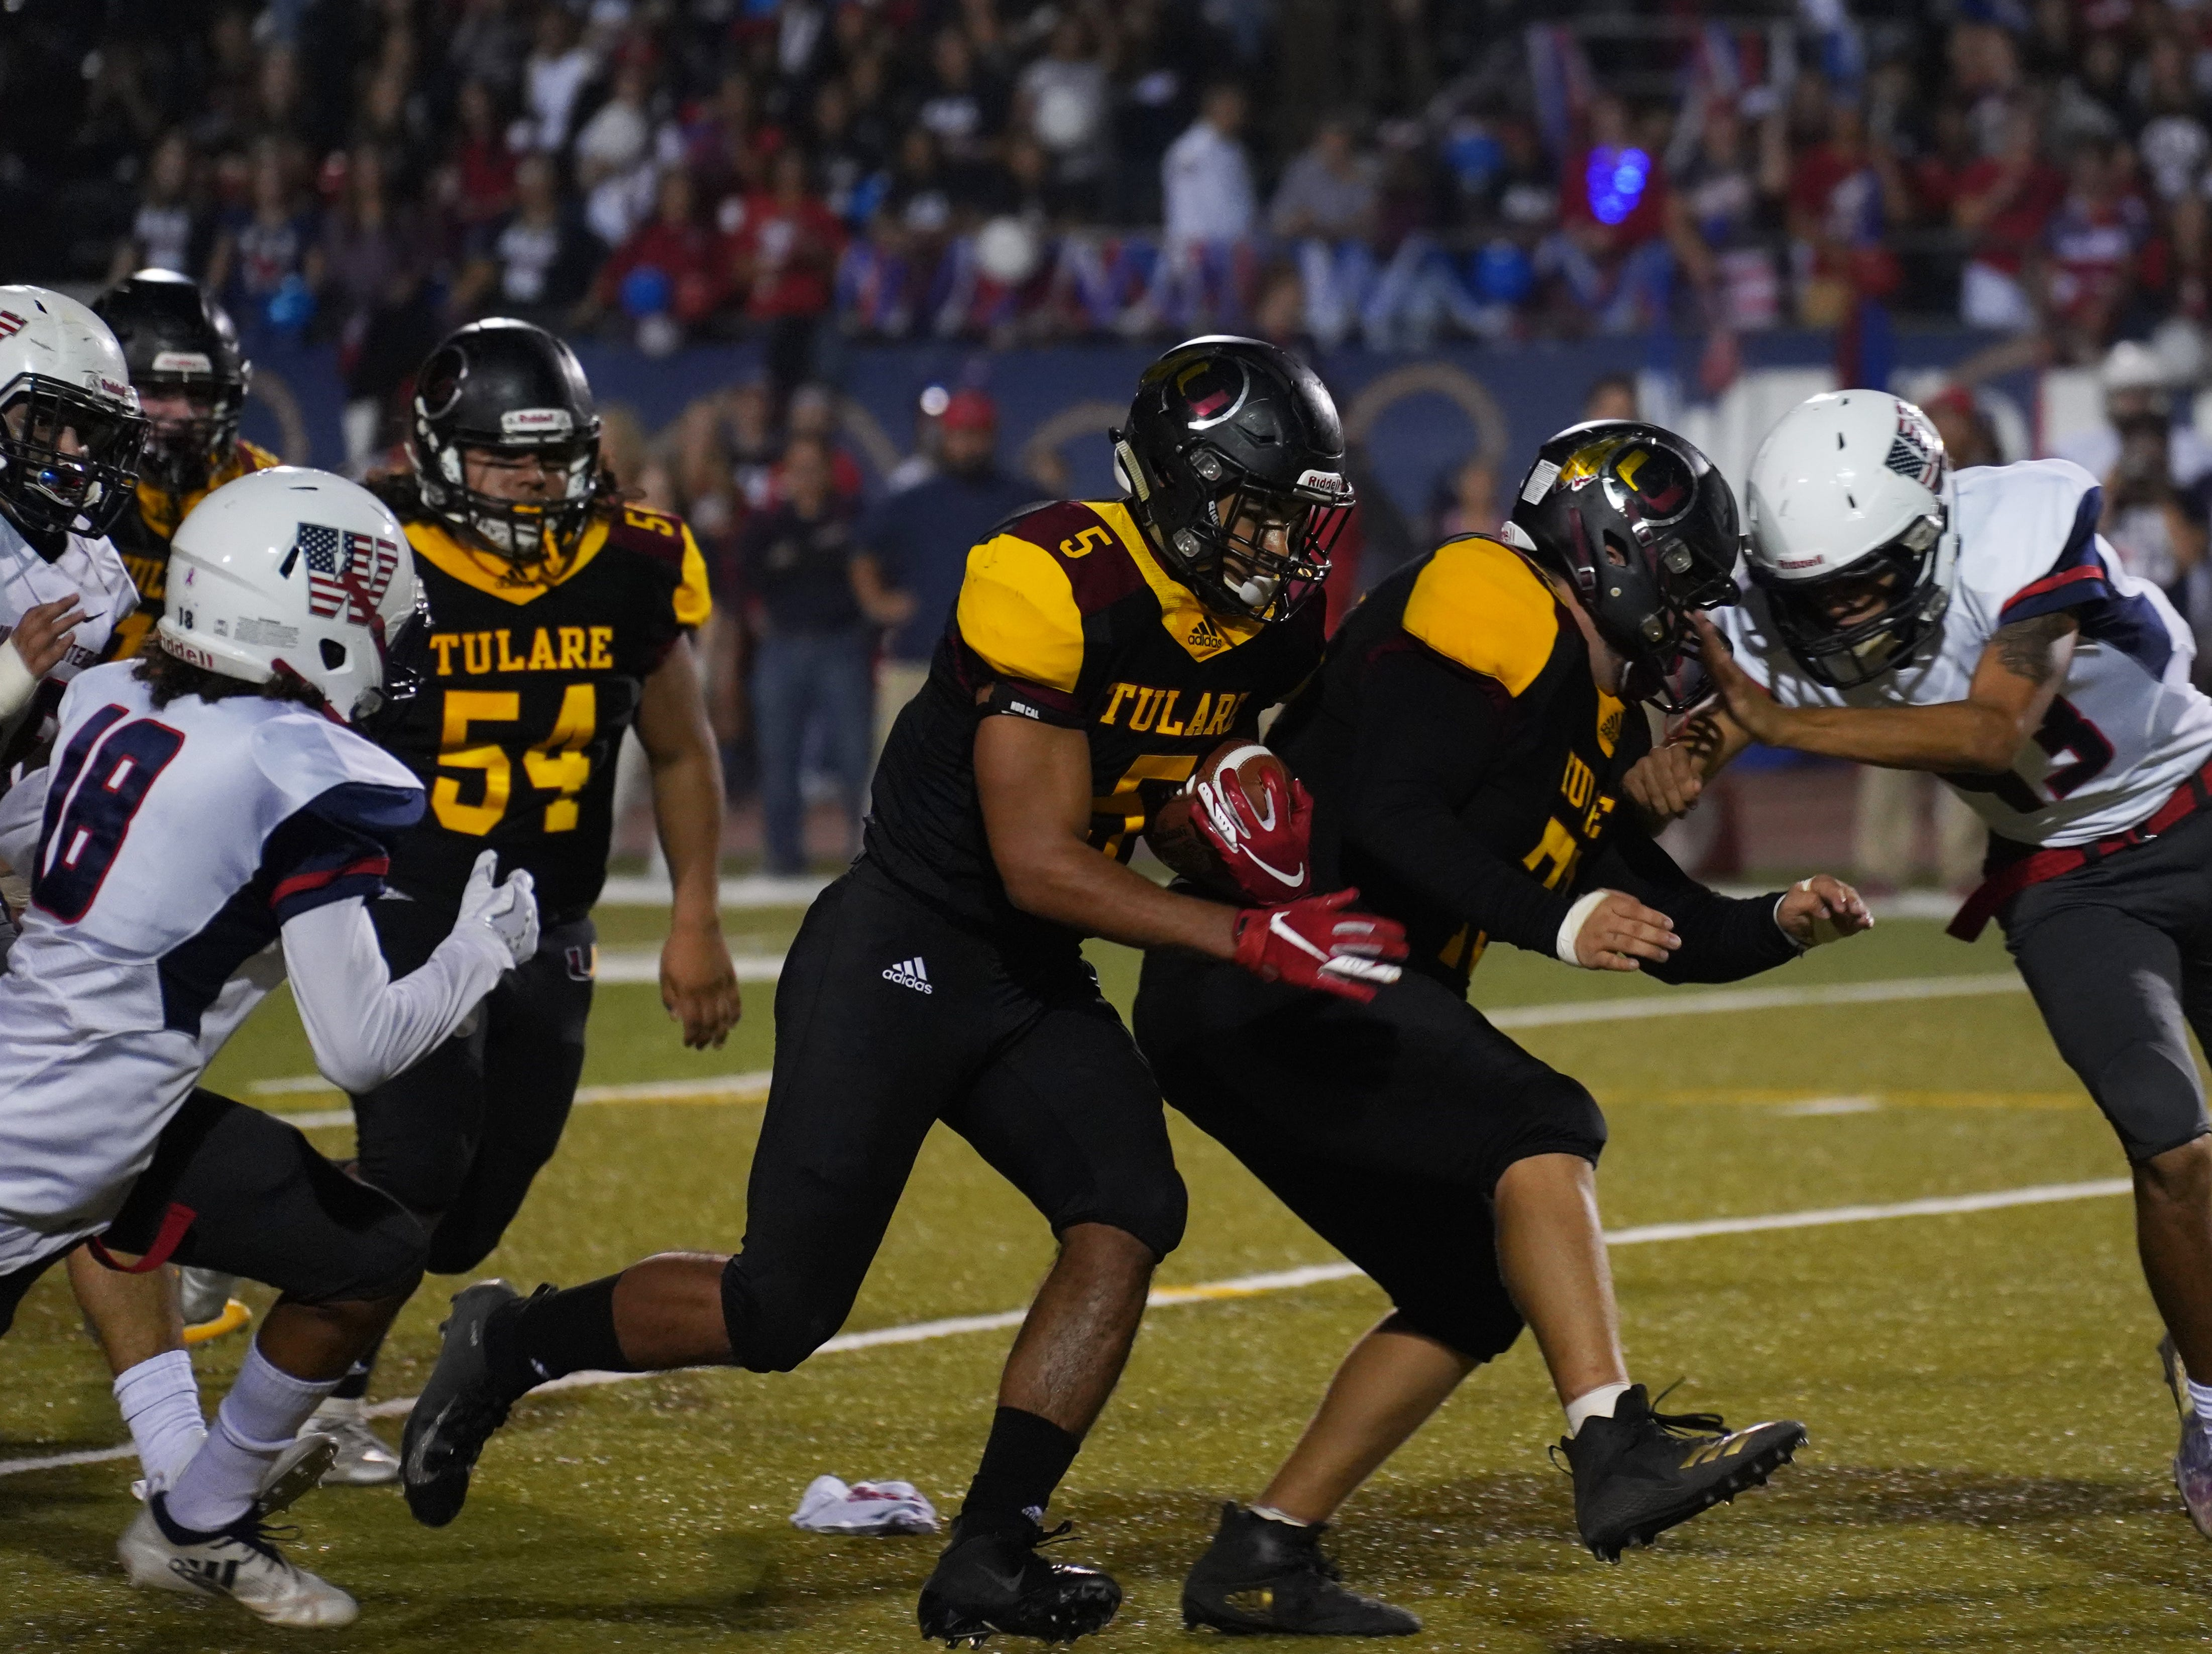 Tulare Union's David Dailey making an impact on offense and defense